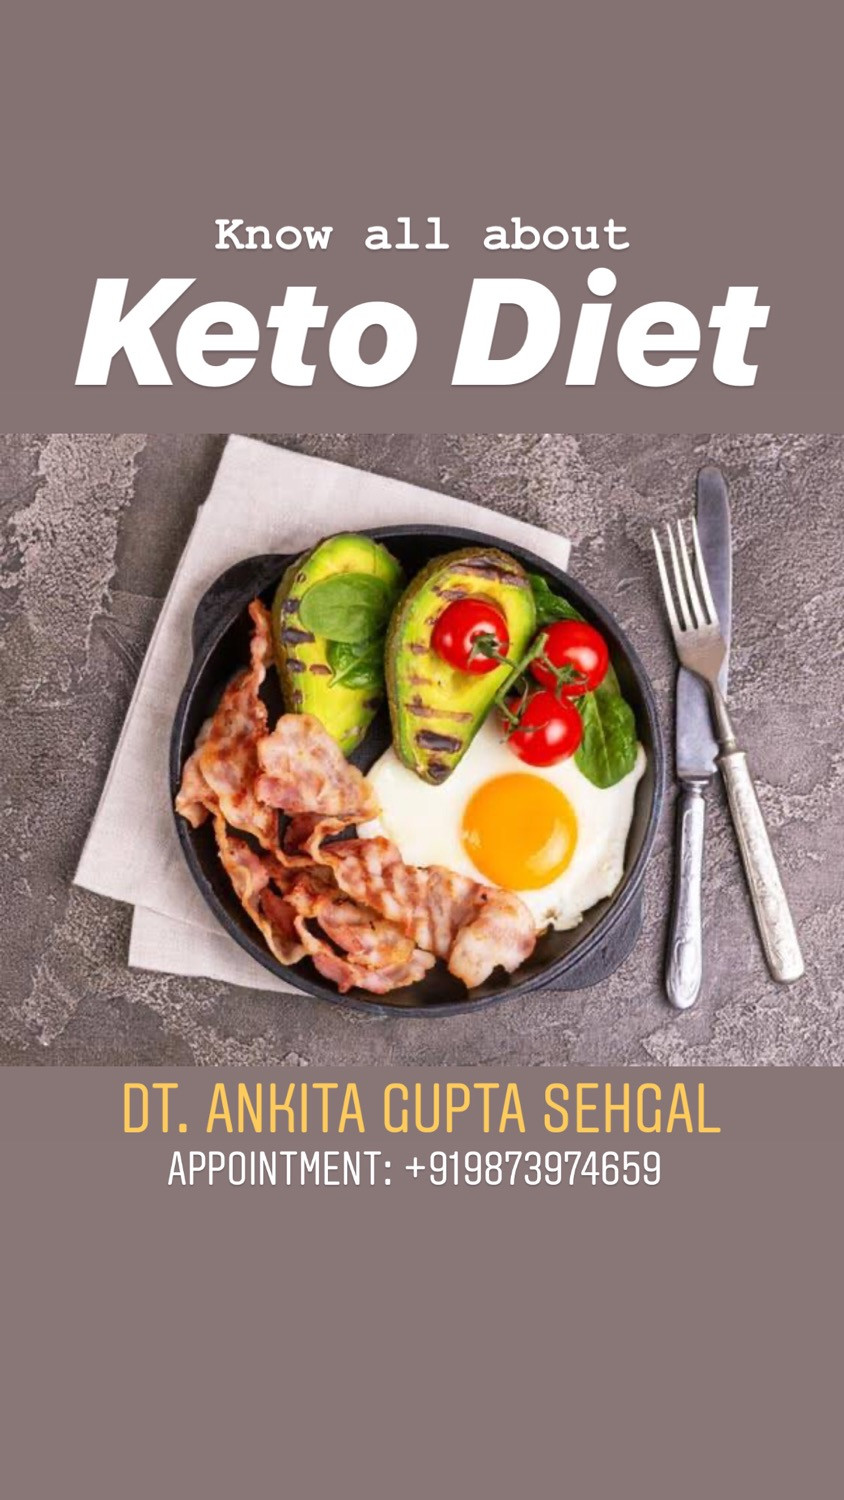 One of the most trending topic on the internet is Keto Diet for Weight Loss. But is it healthy? Is there Any Side Effect? Let's Find Out!